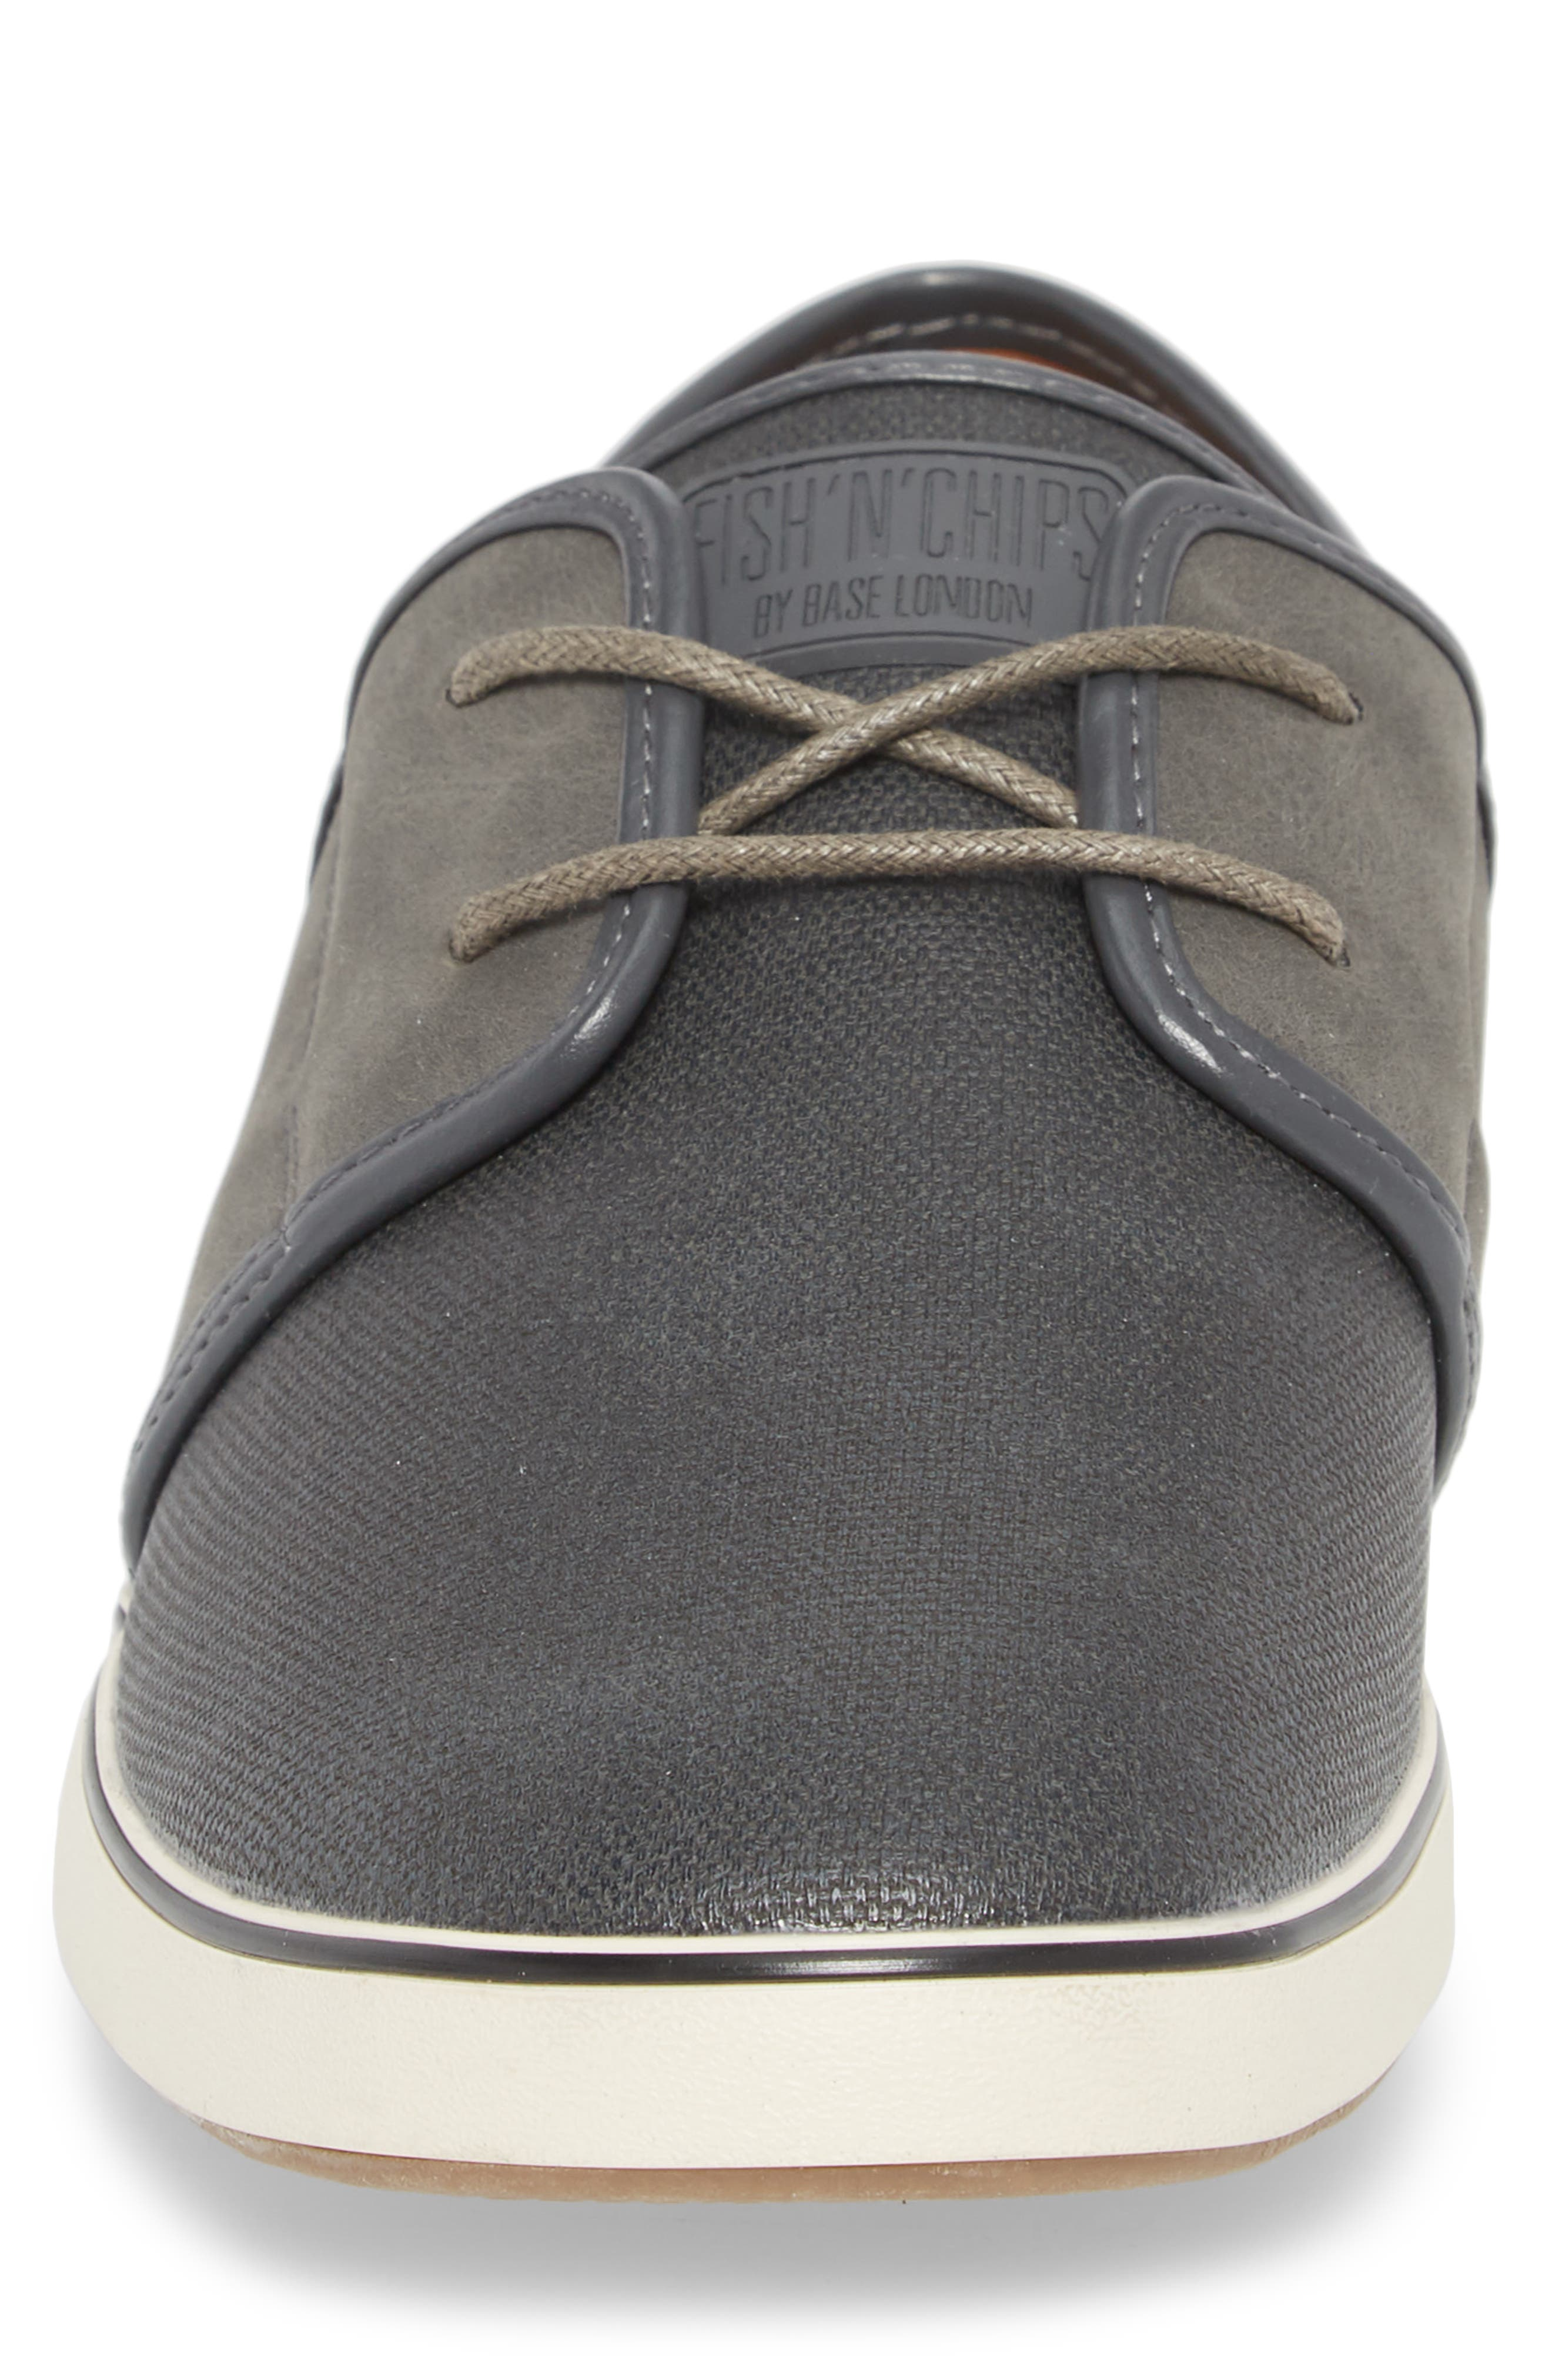 Fish 'N' Chips Madrid Sneaker,                             Alternate thumbnail 5, color,                             Charcoal